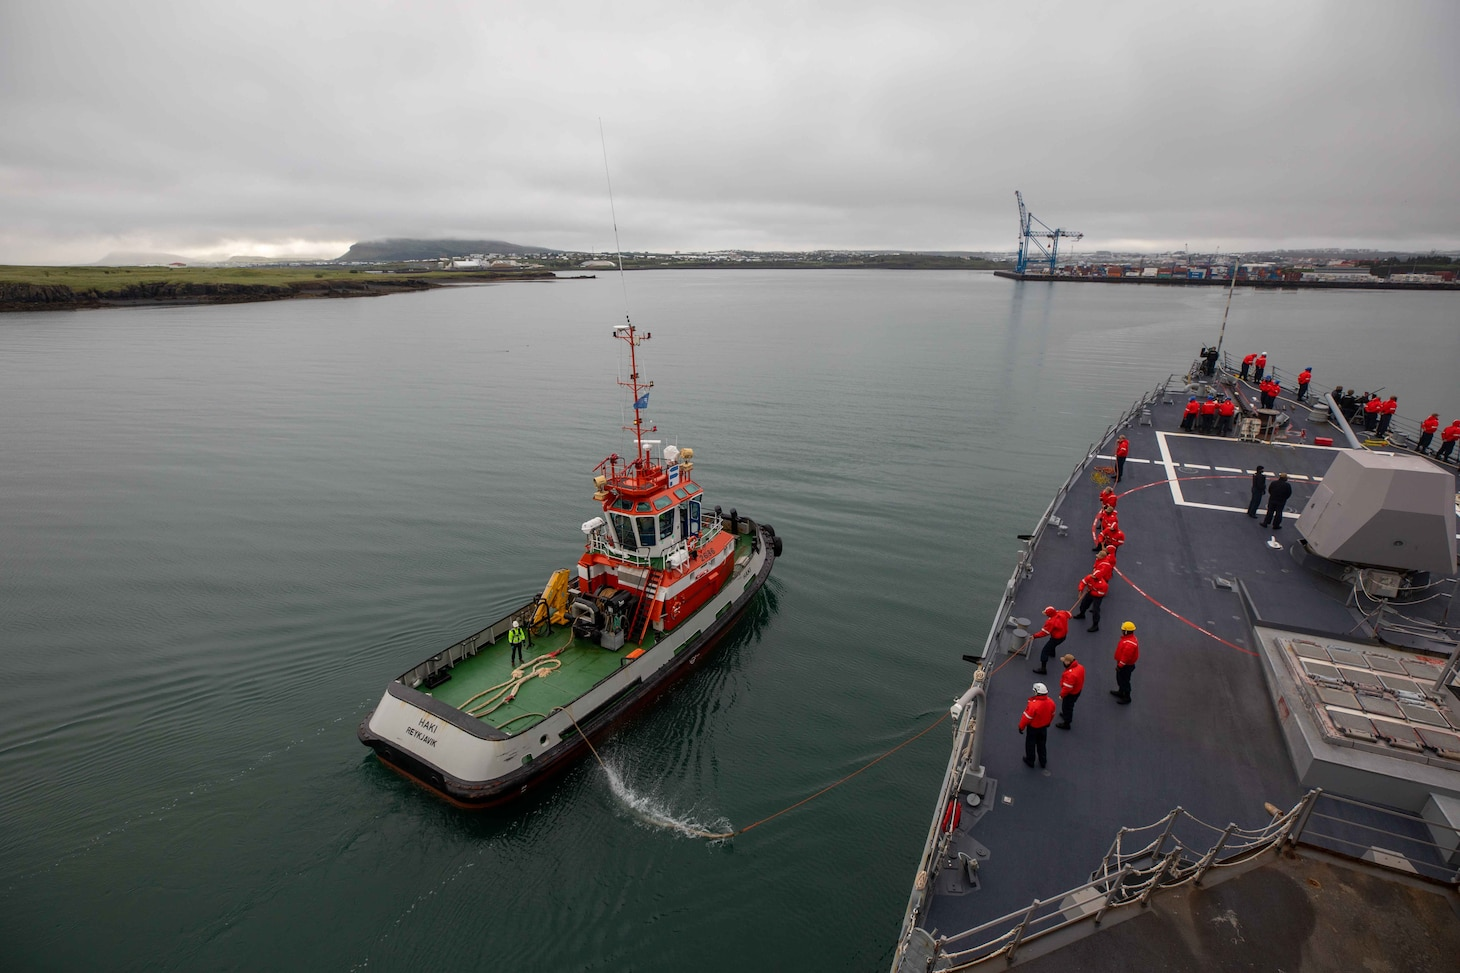 (July 18, 2021) Sailors aboard the Arleigh Burke-class guided-missile destroyer USS Roosevelt (DDG 80) handle line from a tugboat, July 18, 2021. Roosevelt, forward-deployed to Rota, Spain, is on its second patrol in the U.S. Sixth Fleet area of operations in support of regional allies and partners and U.S. national security interests in Europe and Africa.